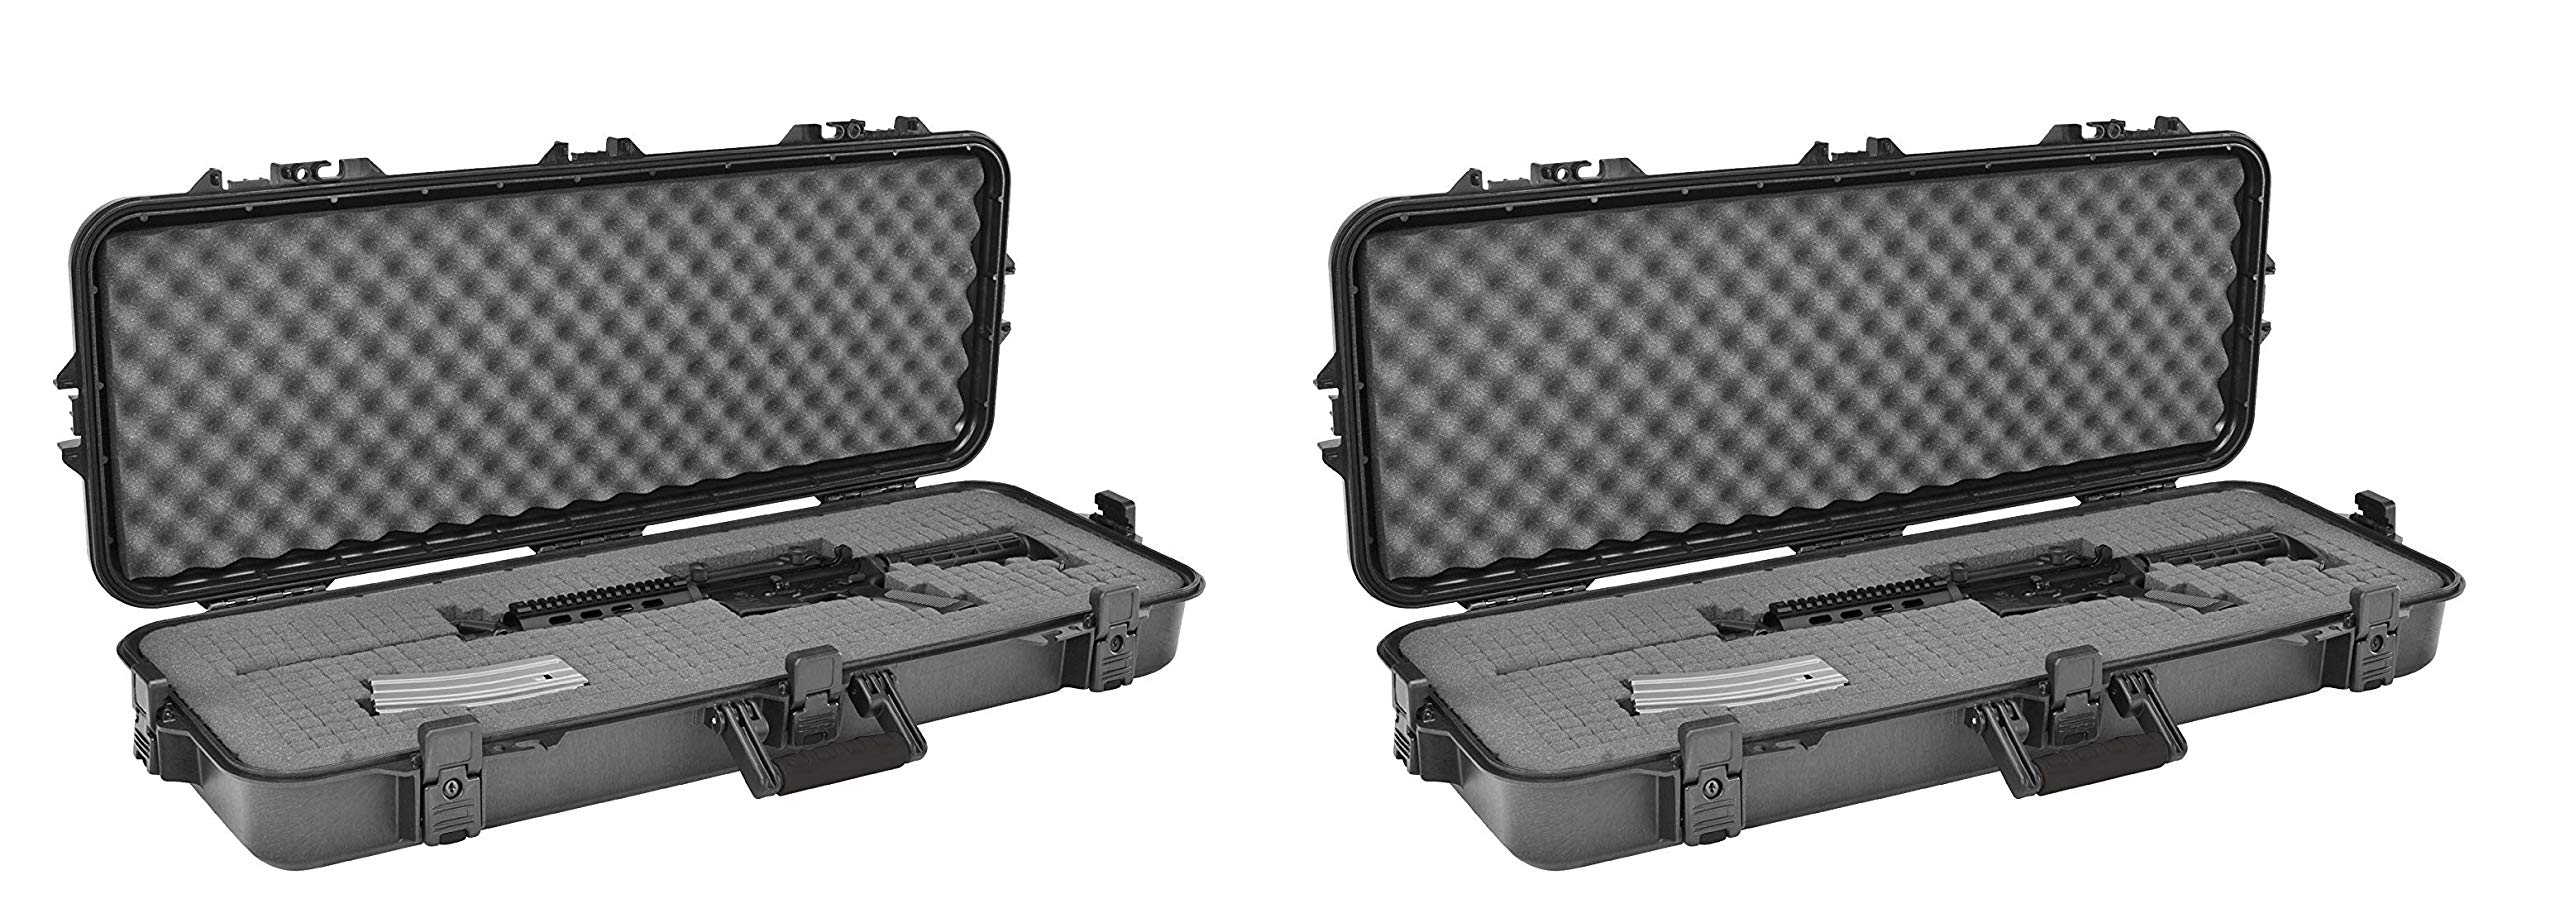 Plano All Weather Tactical Gun Case, 42-Inch (Previous Generation) (Pack of 2)